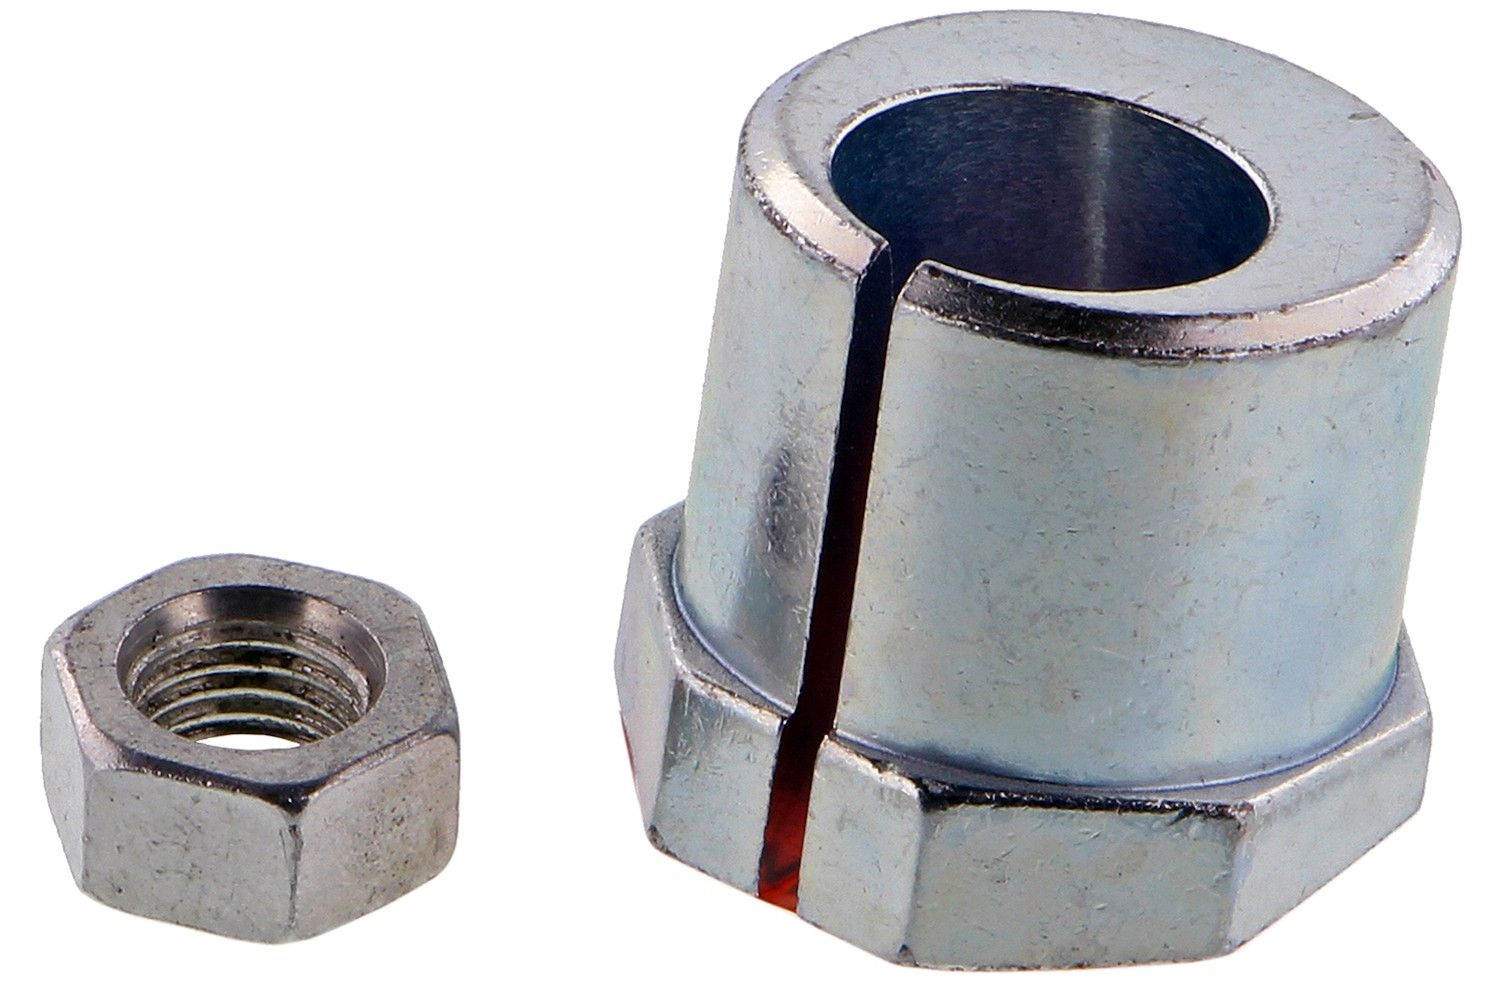 Ford F-250 Super Duty Alignment Caster / Camber Bushing